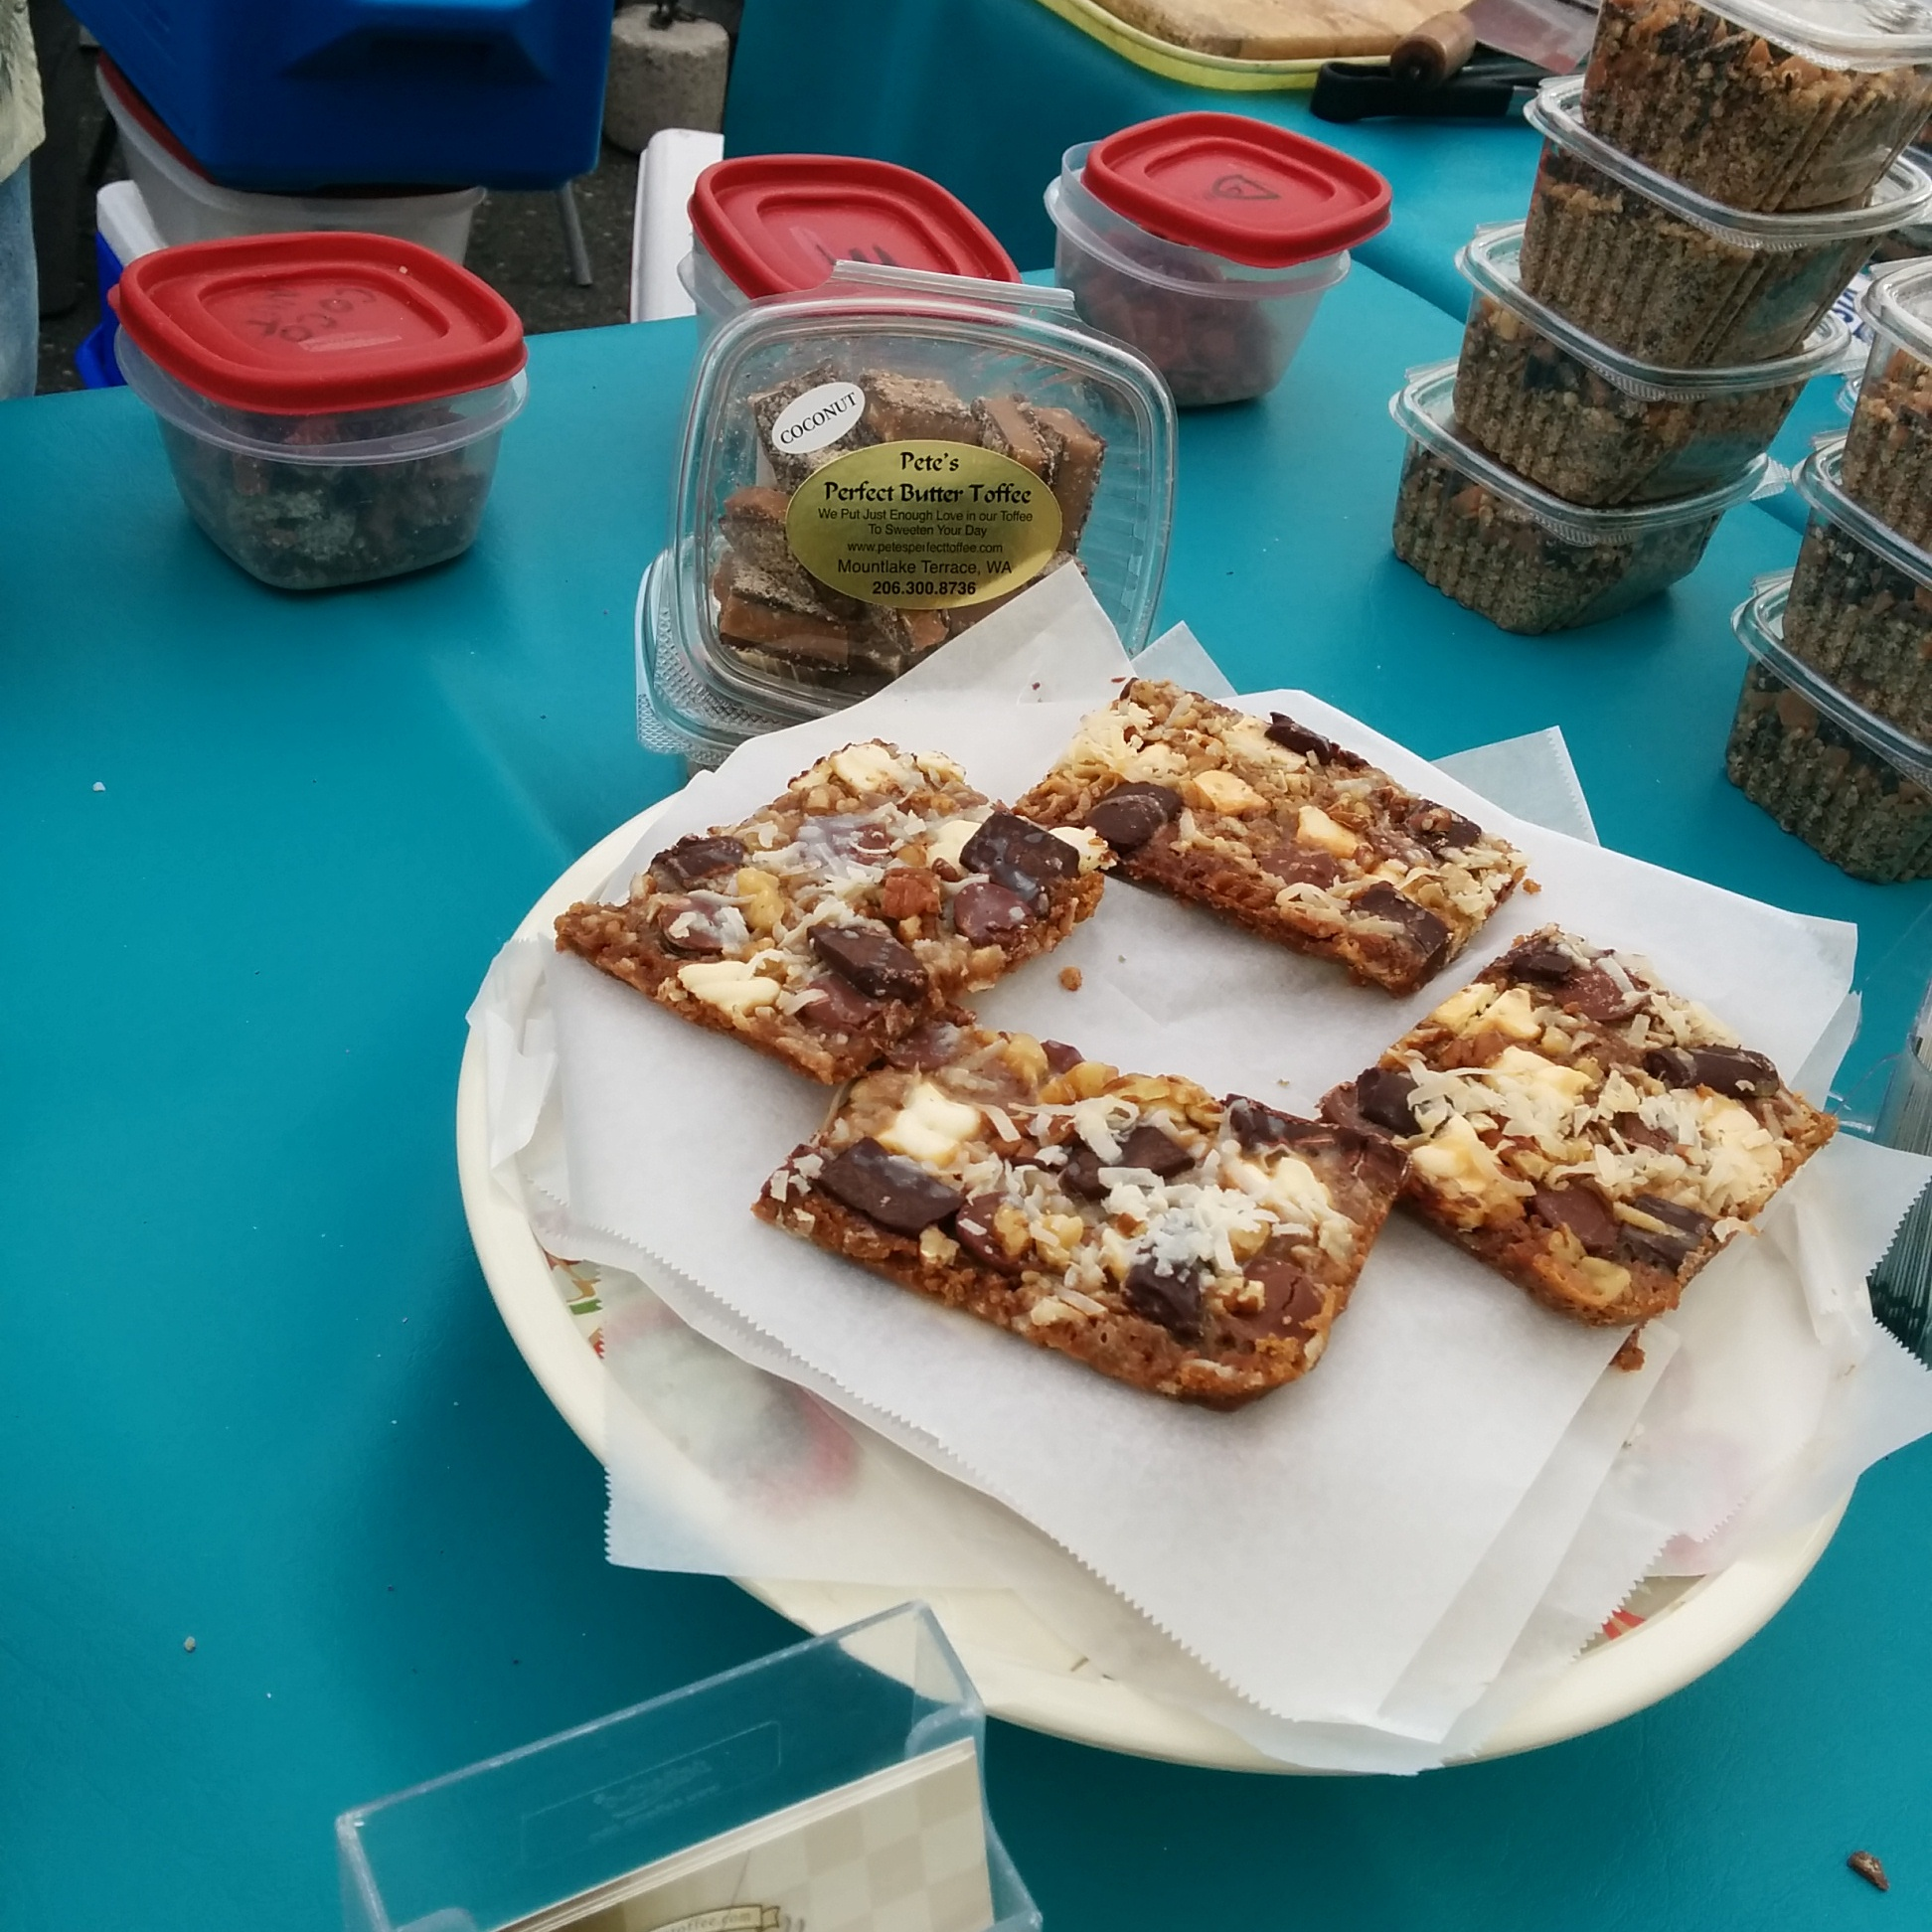 Pure bliss in a square called bark.  Pete's Perfect Toffee at Ballard Farmers Market.